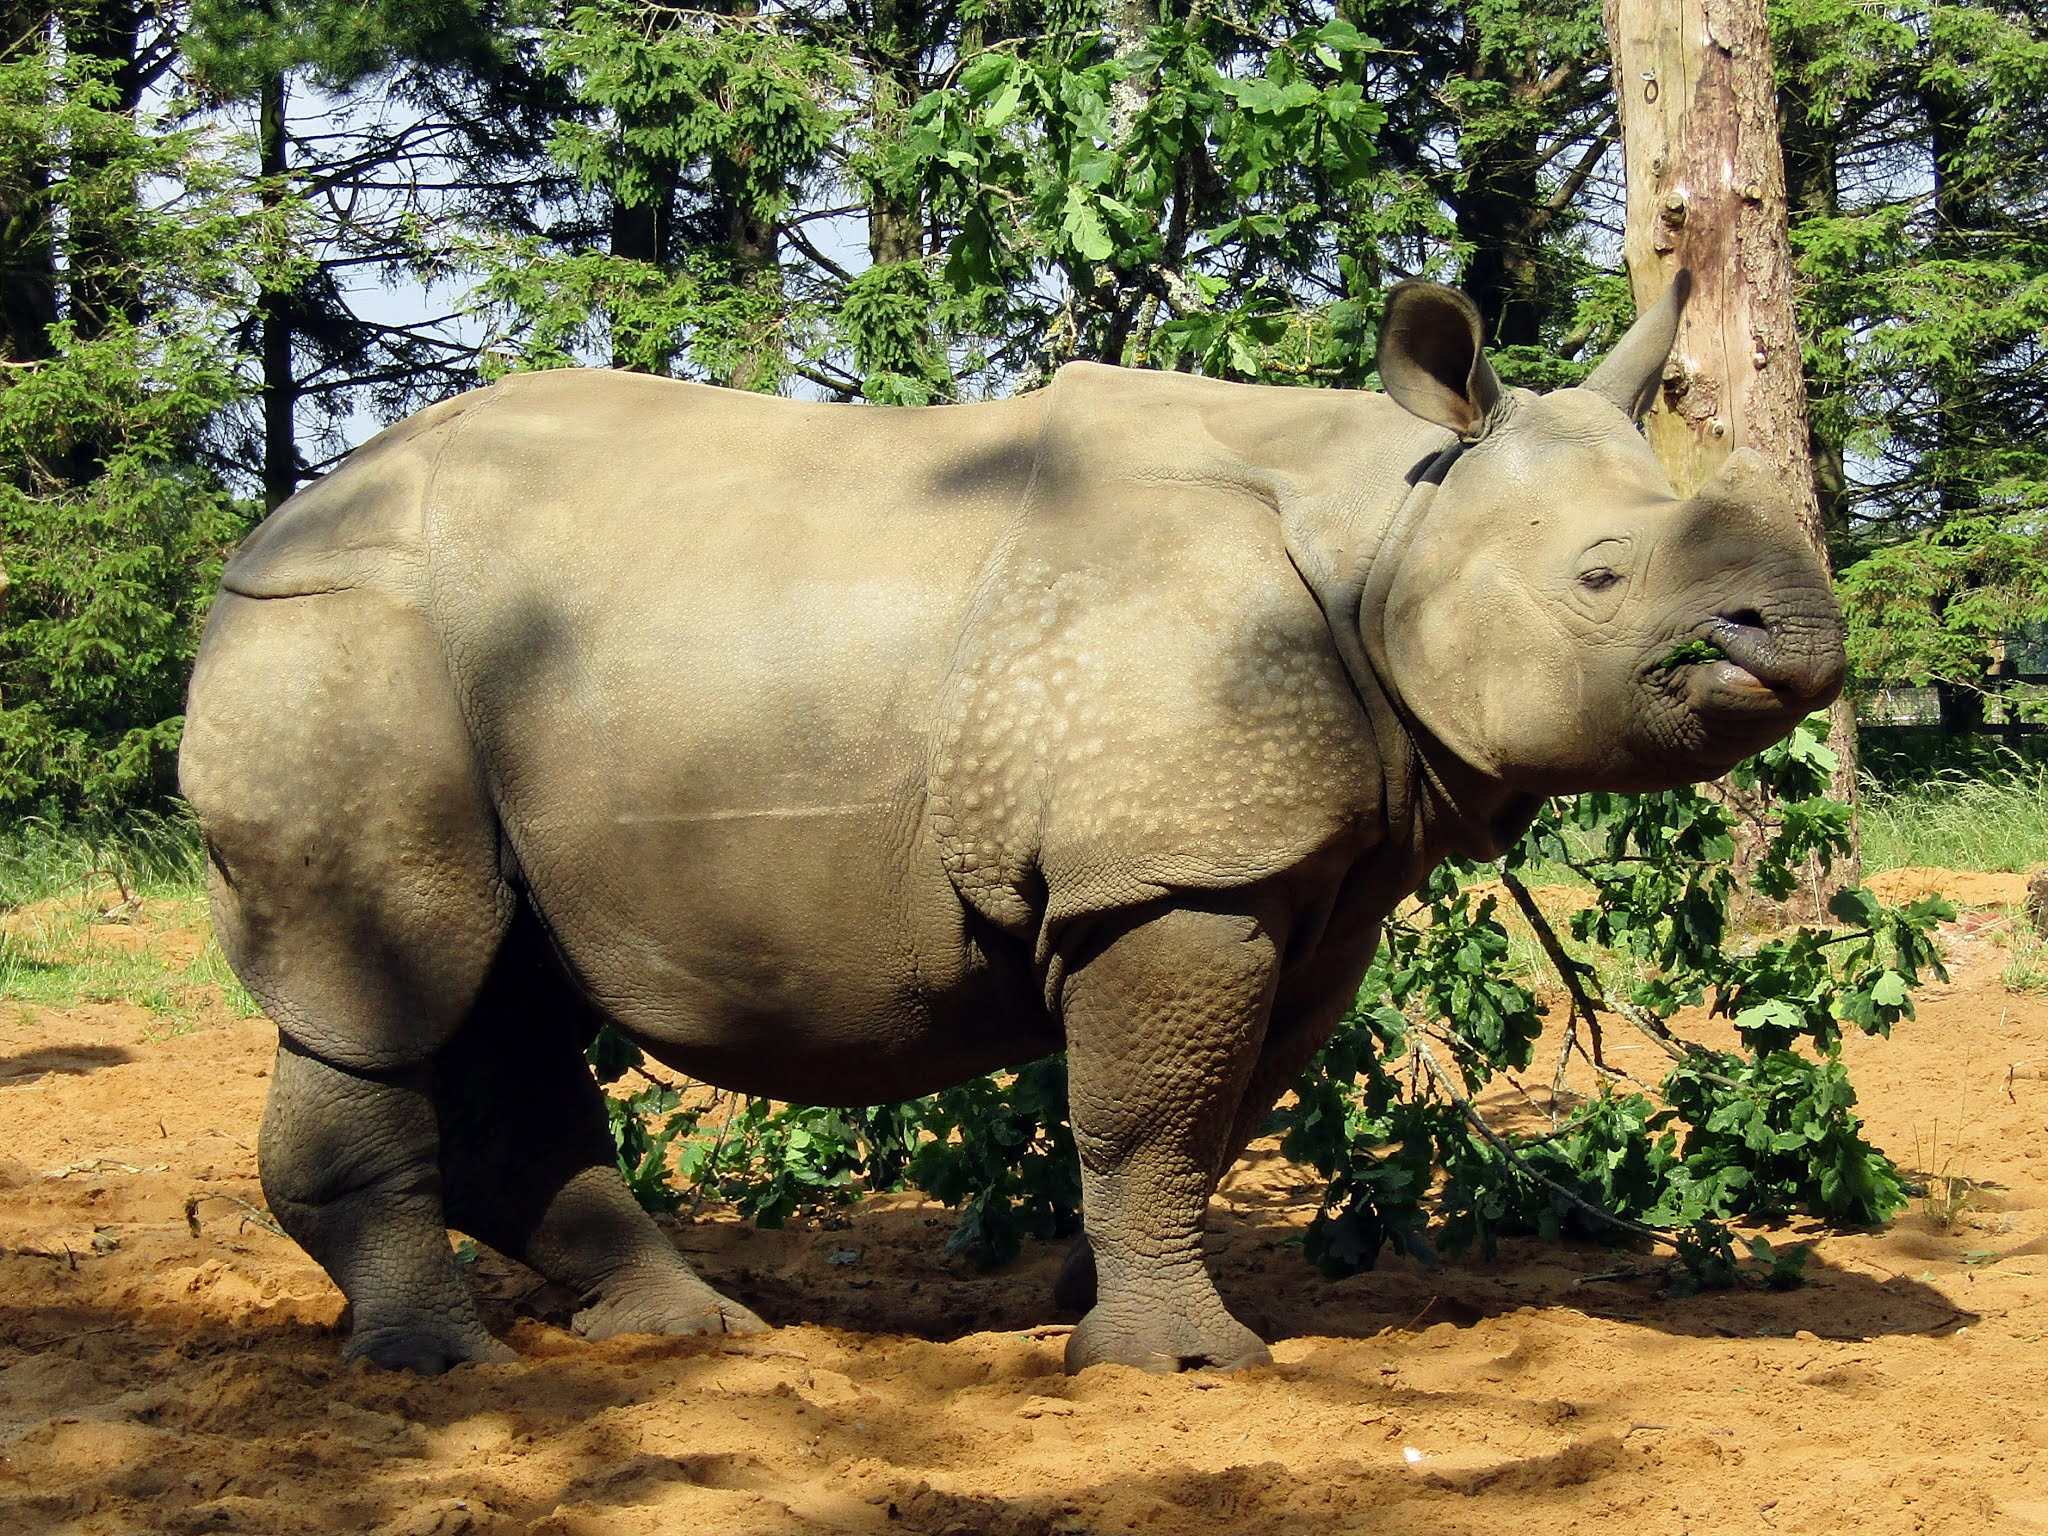 A photo of a grey greater one-horned rhino at Whipsnade Zoo.